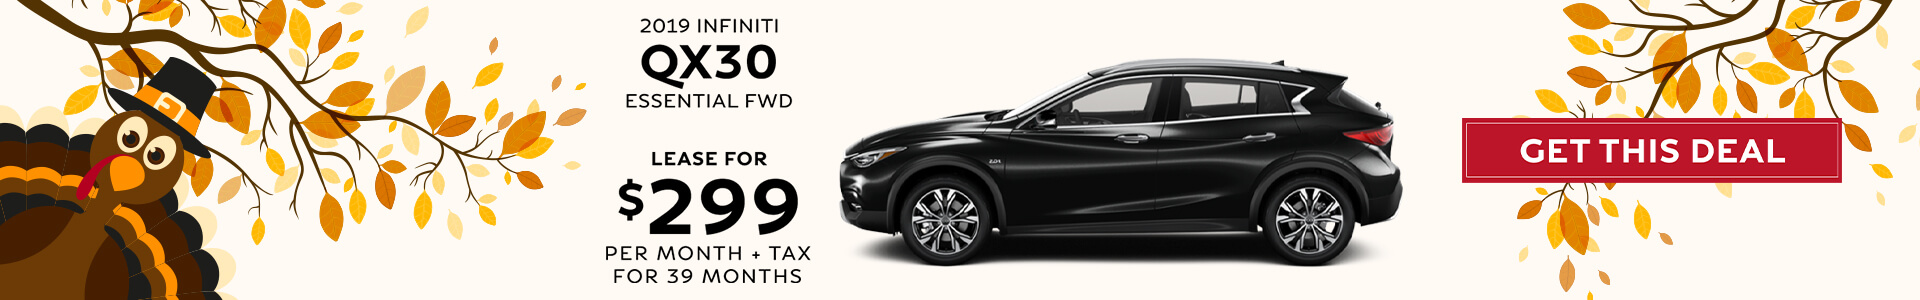 QX30 ESSENTIAL - Lease for $299